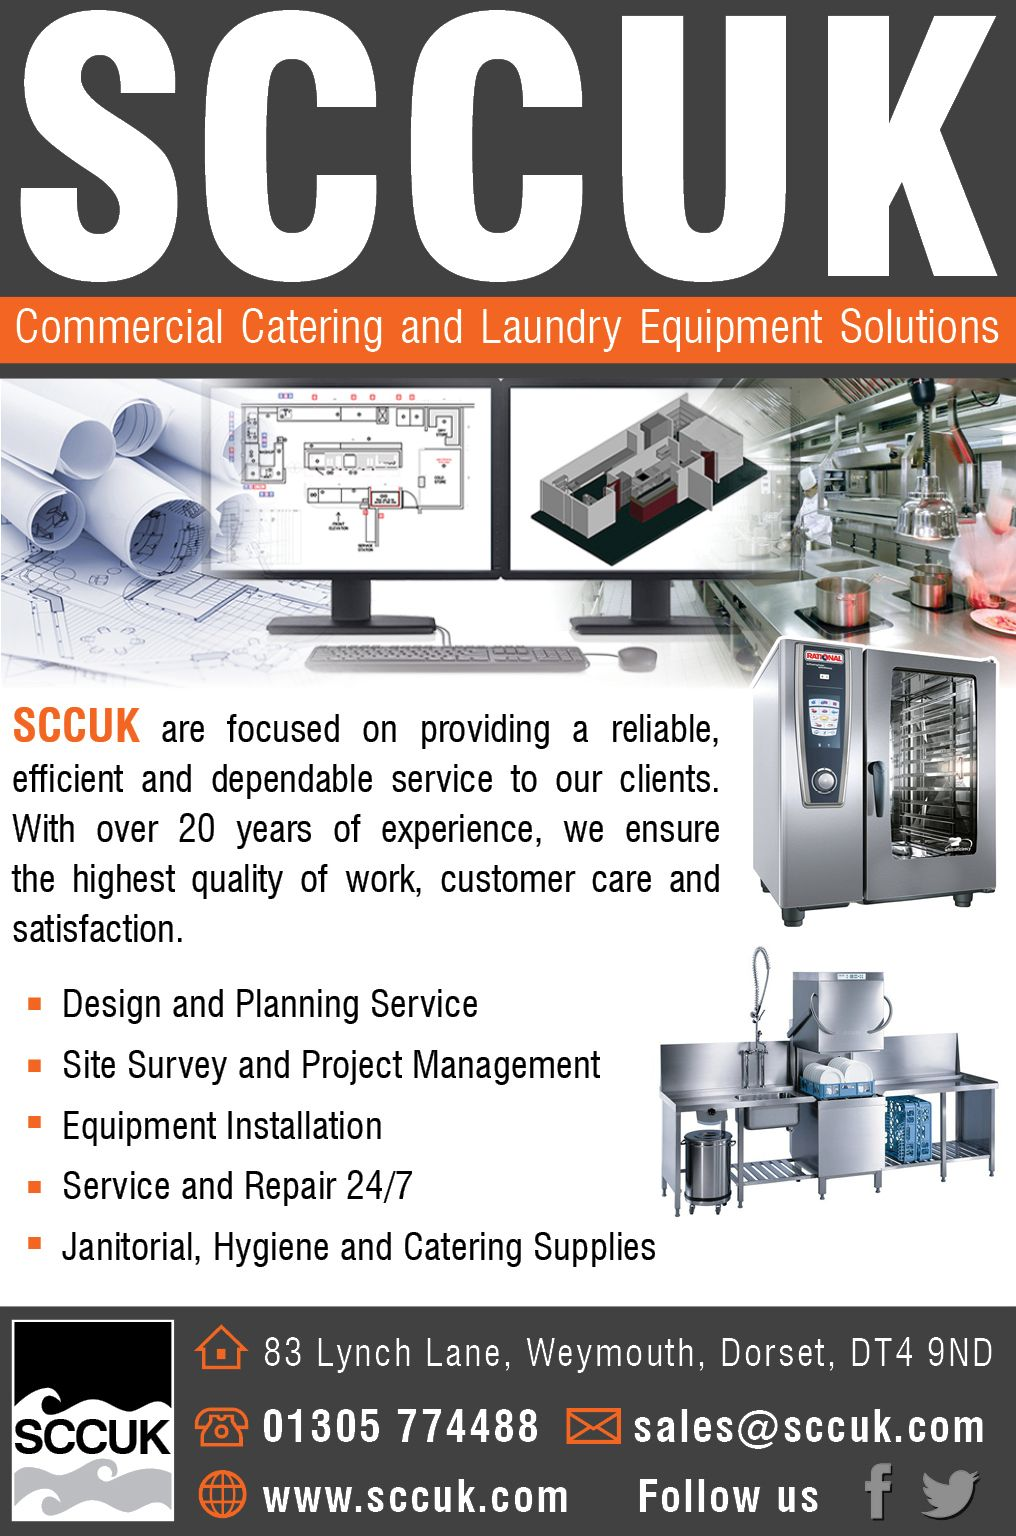 SCCUK Commercial Catering and Laundry Equipment Solutions